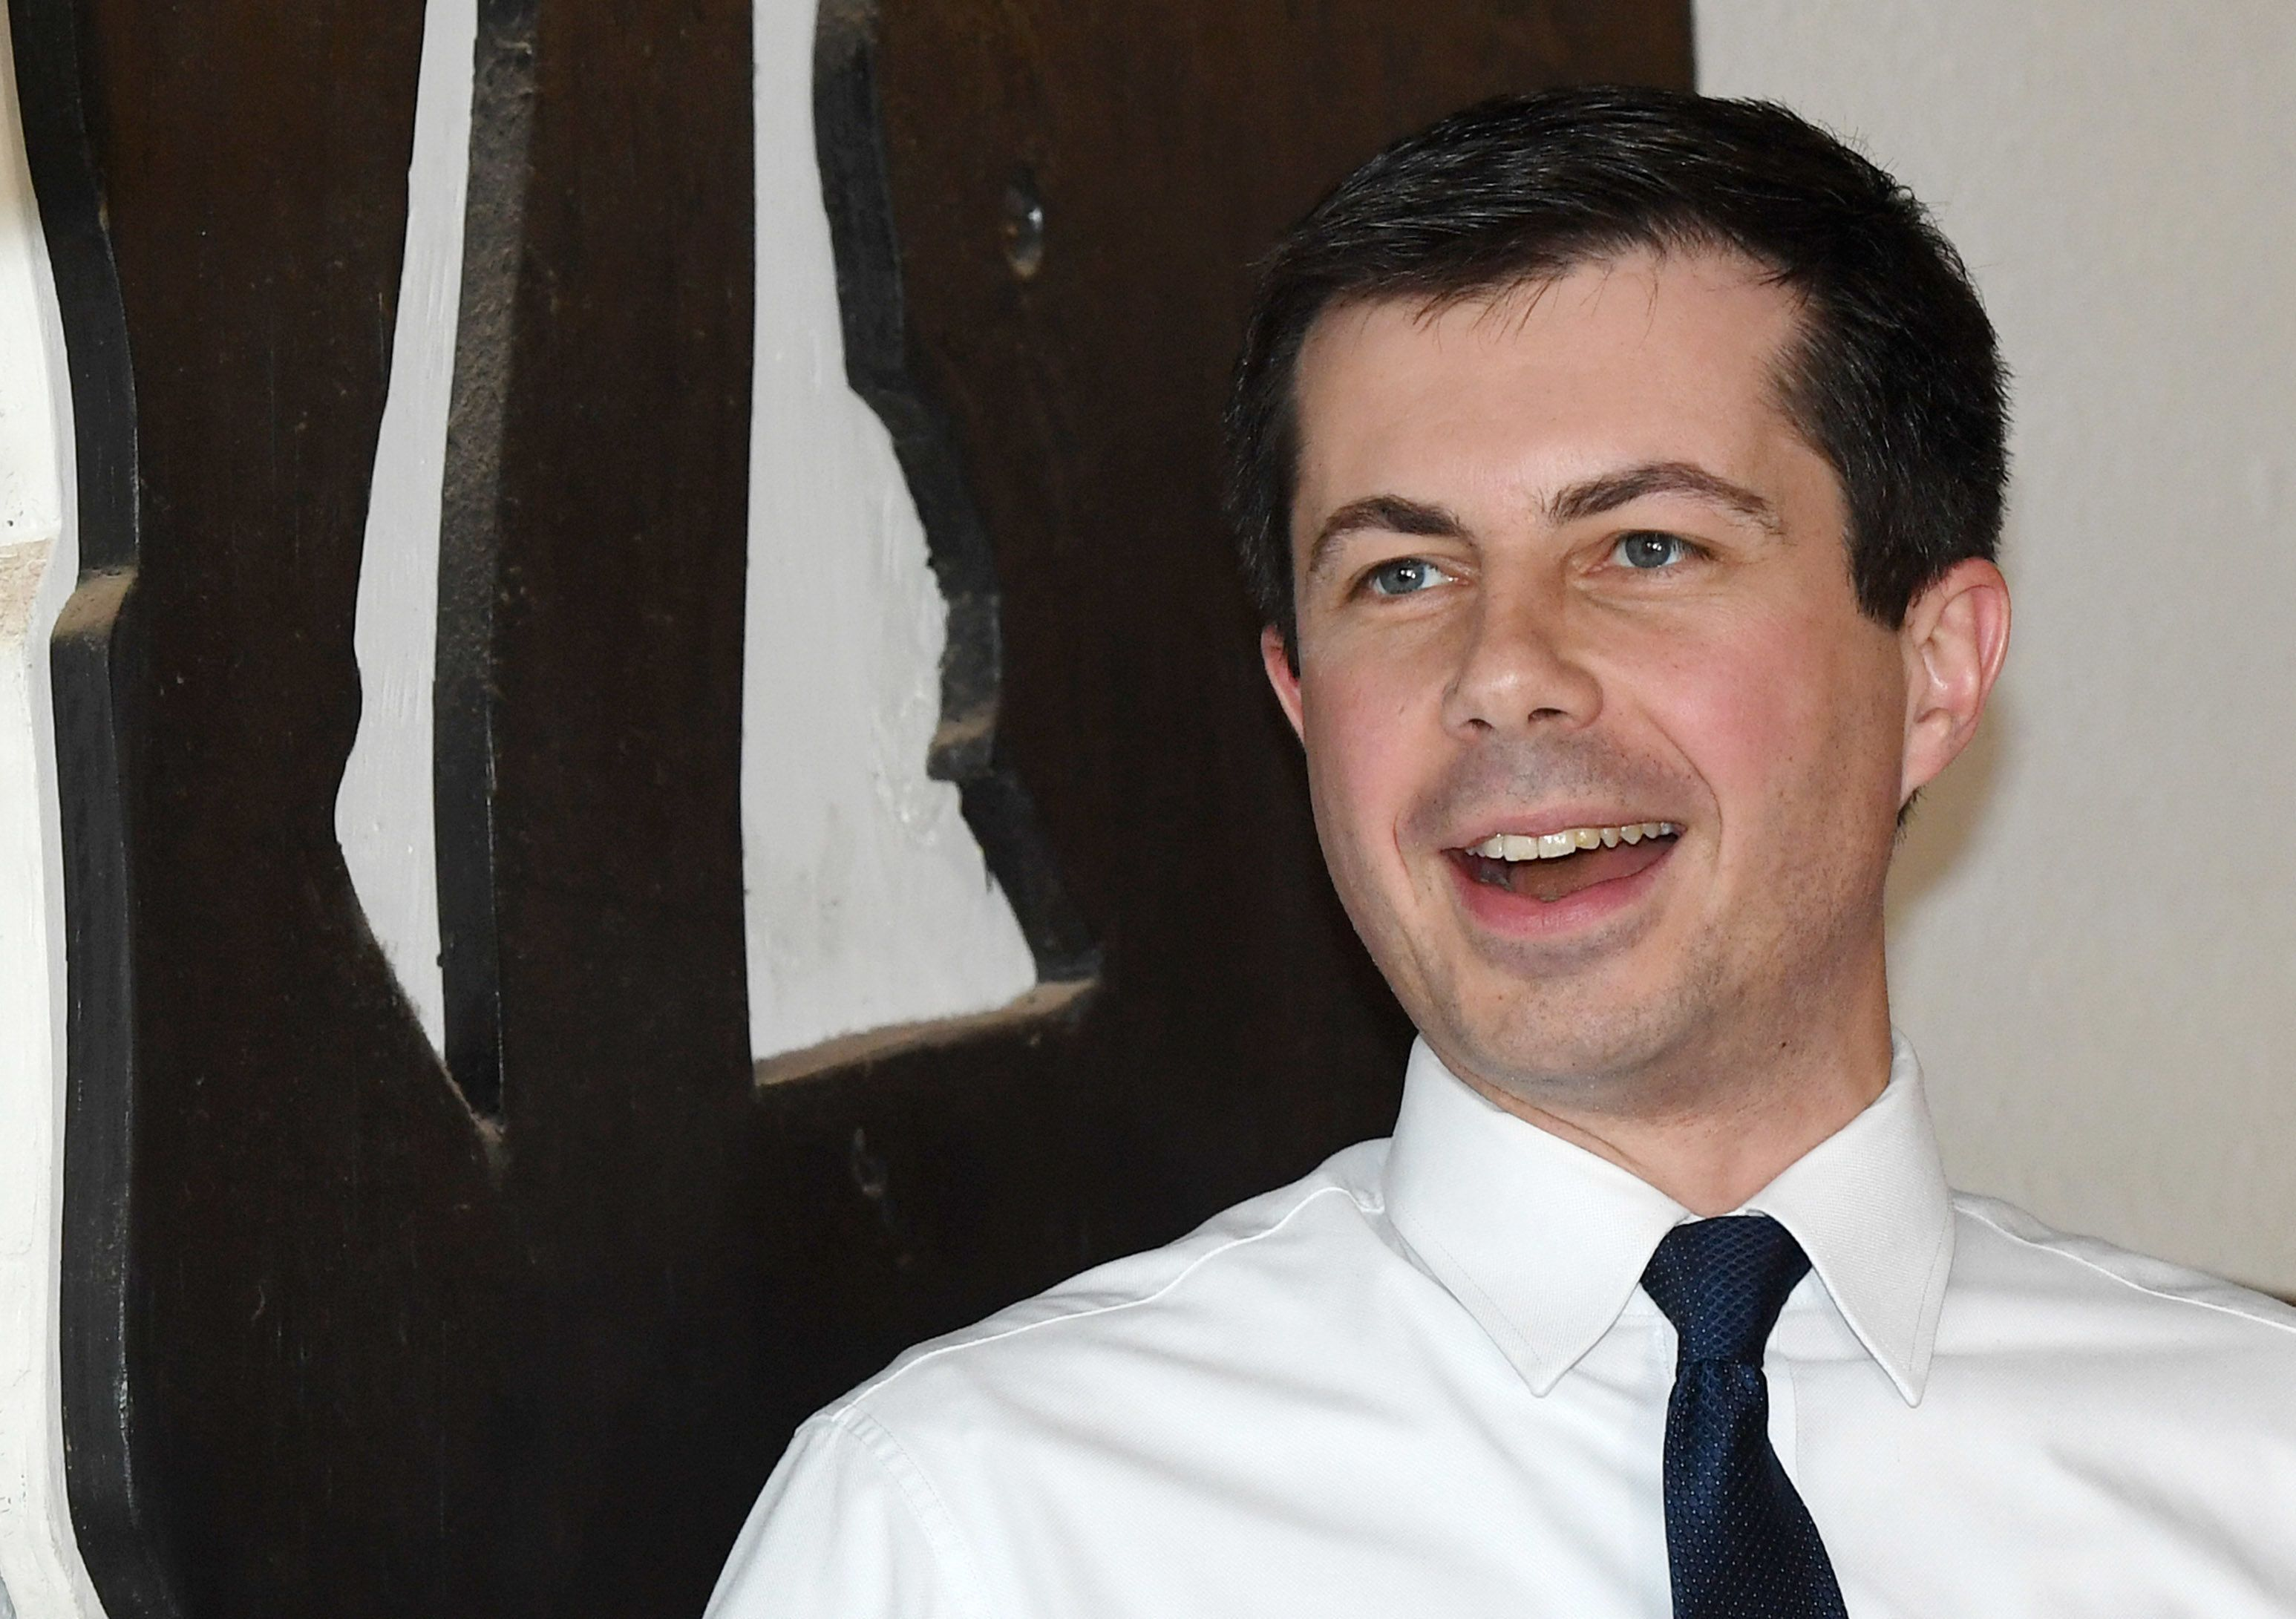 Conservatives Are Trying To Claim Pete Buttigieg Isn't Actually A